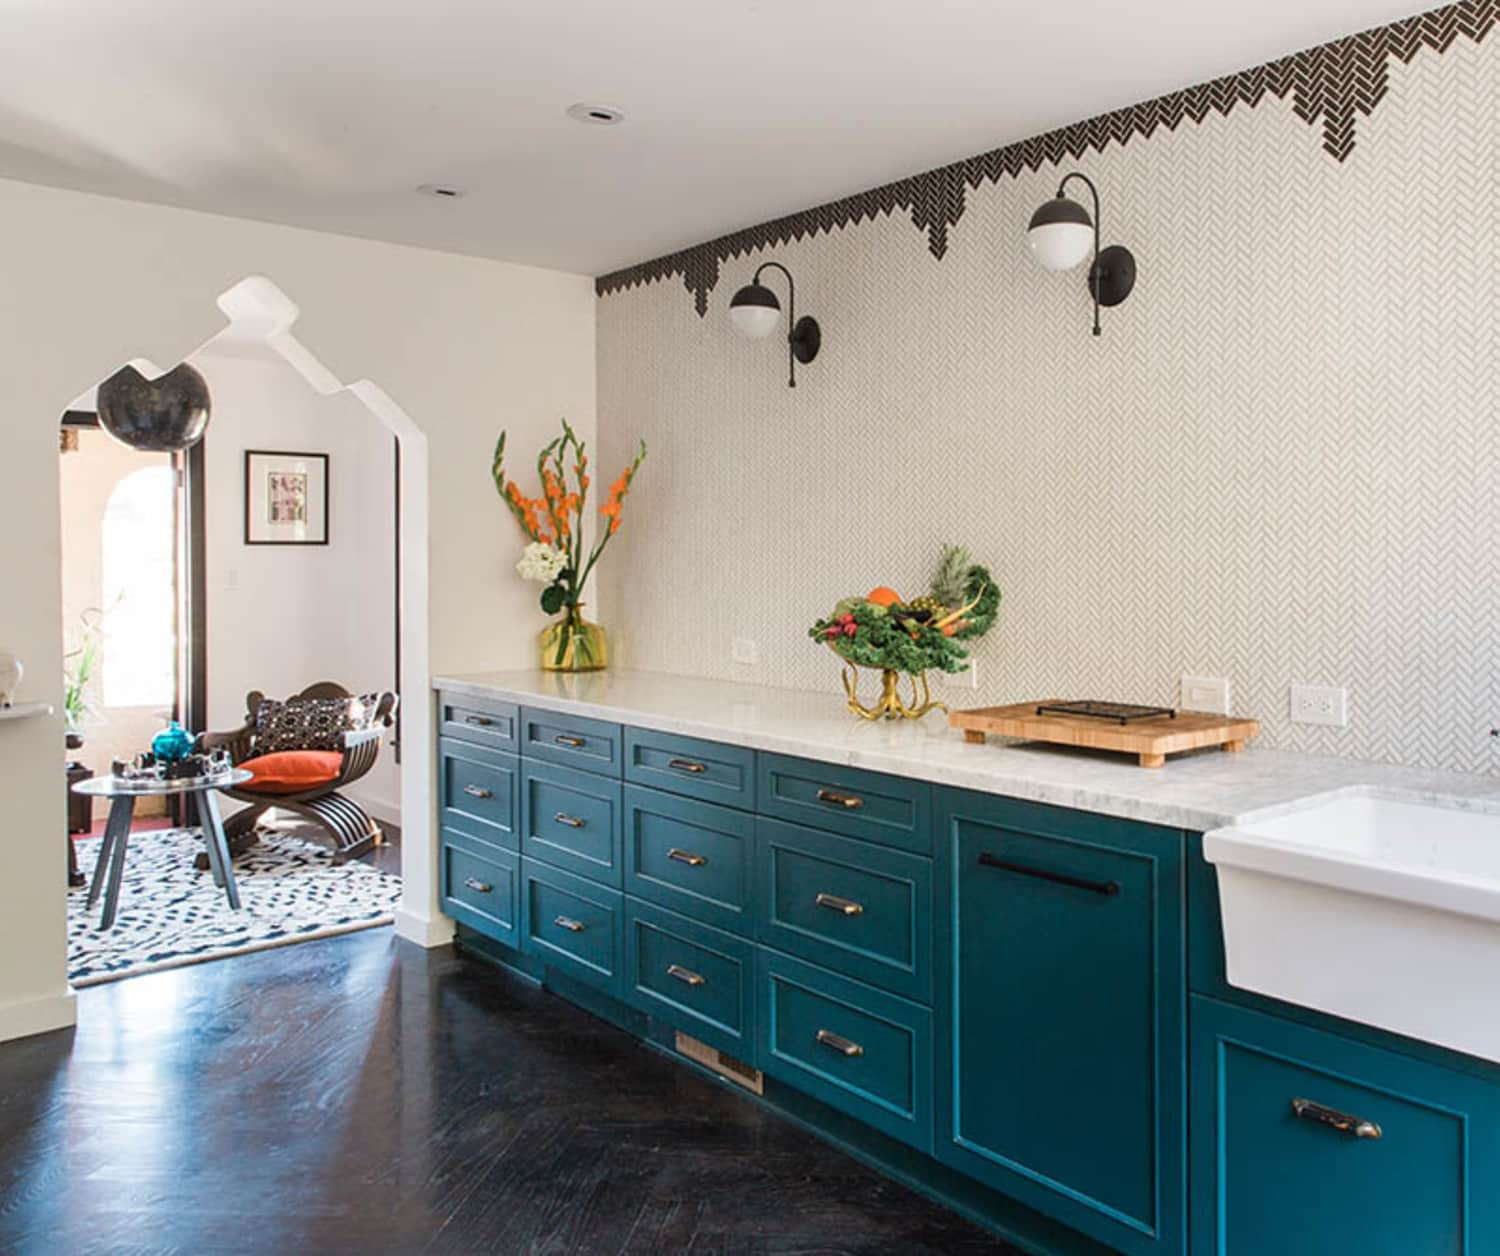 Dark Teal Kitchen Cabinets: The Kitchen Cabinet Color I'm Obsessed With